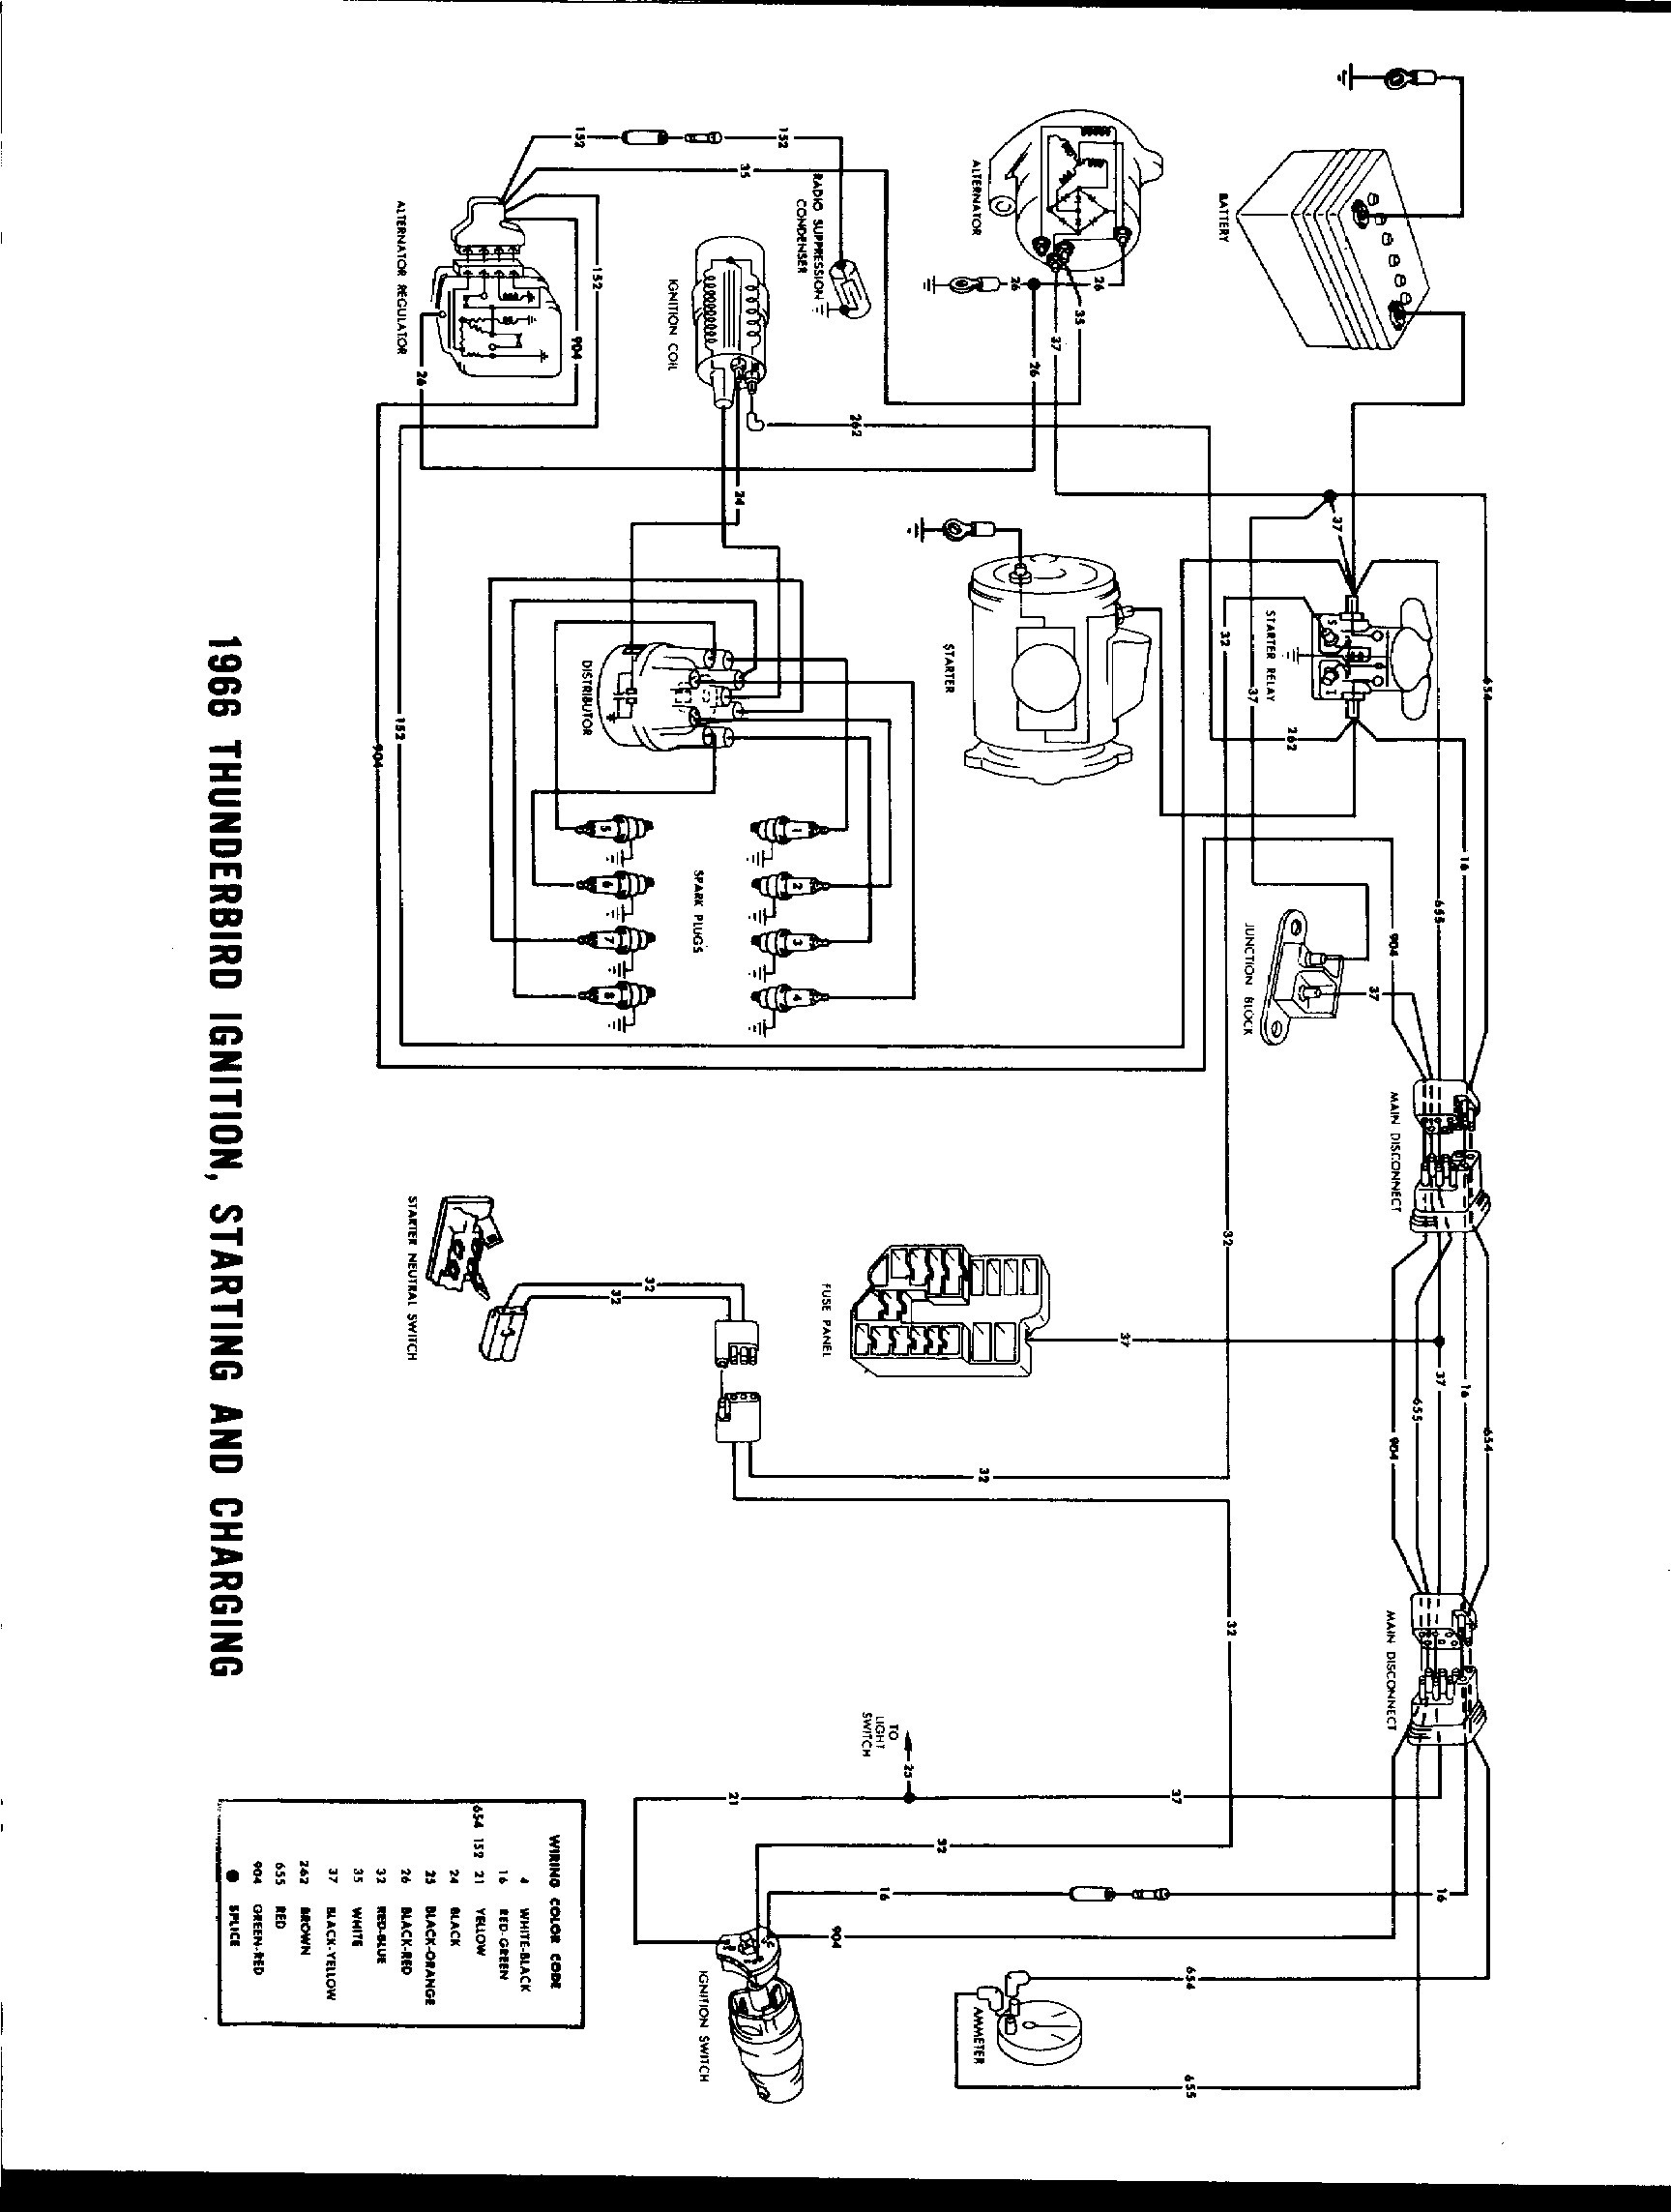 Renault Clio 3 Wiring Diagram Iii Wire Espace Iv Kangoo Engine Diagrams Download